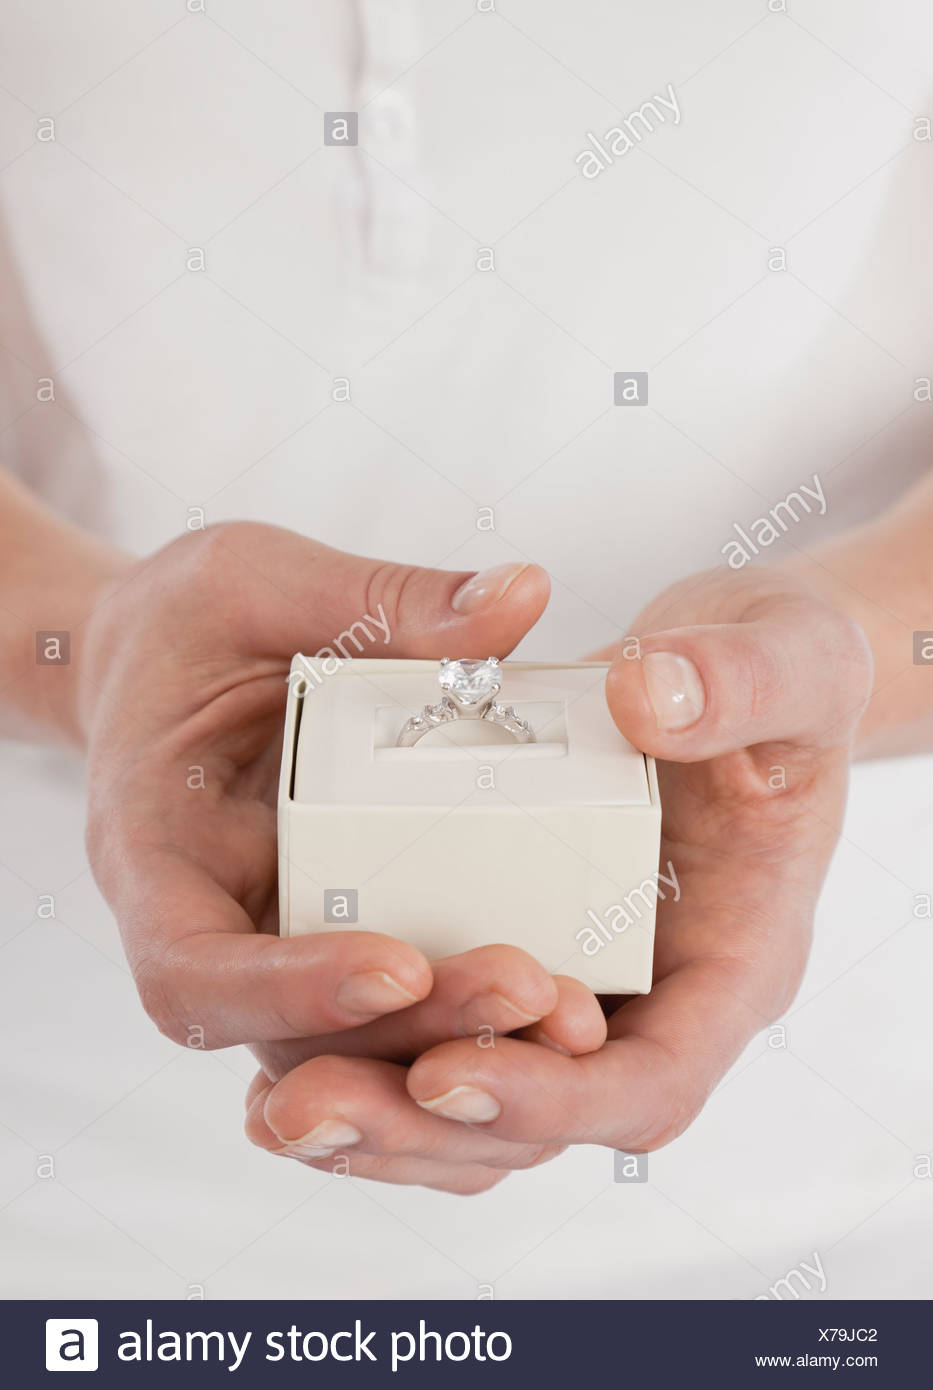 Close-up of woman's hands holding diamond ring in box - Stock Image